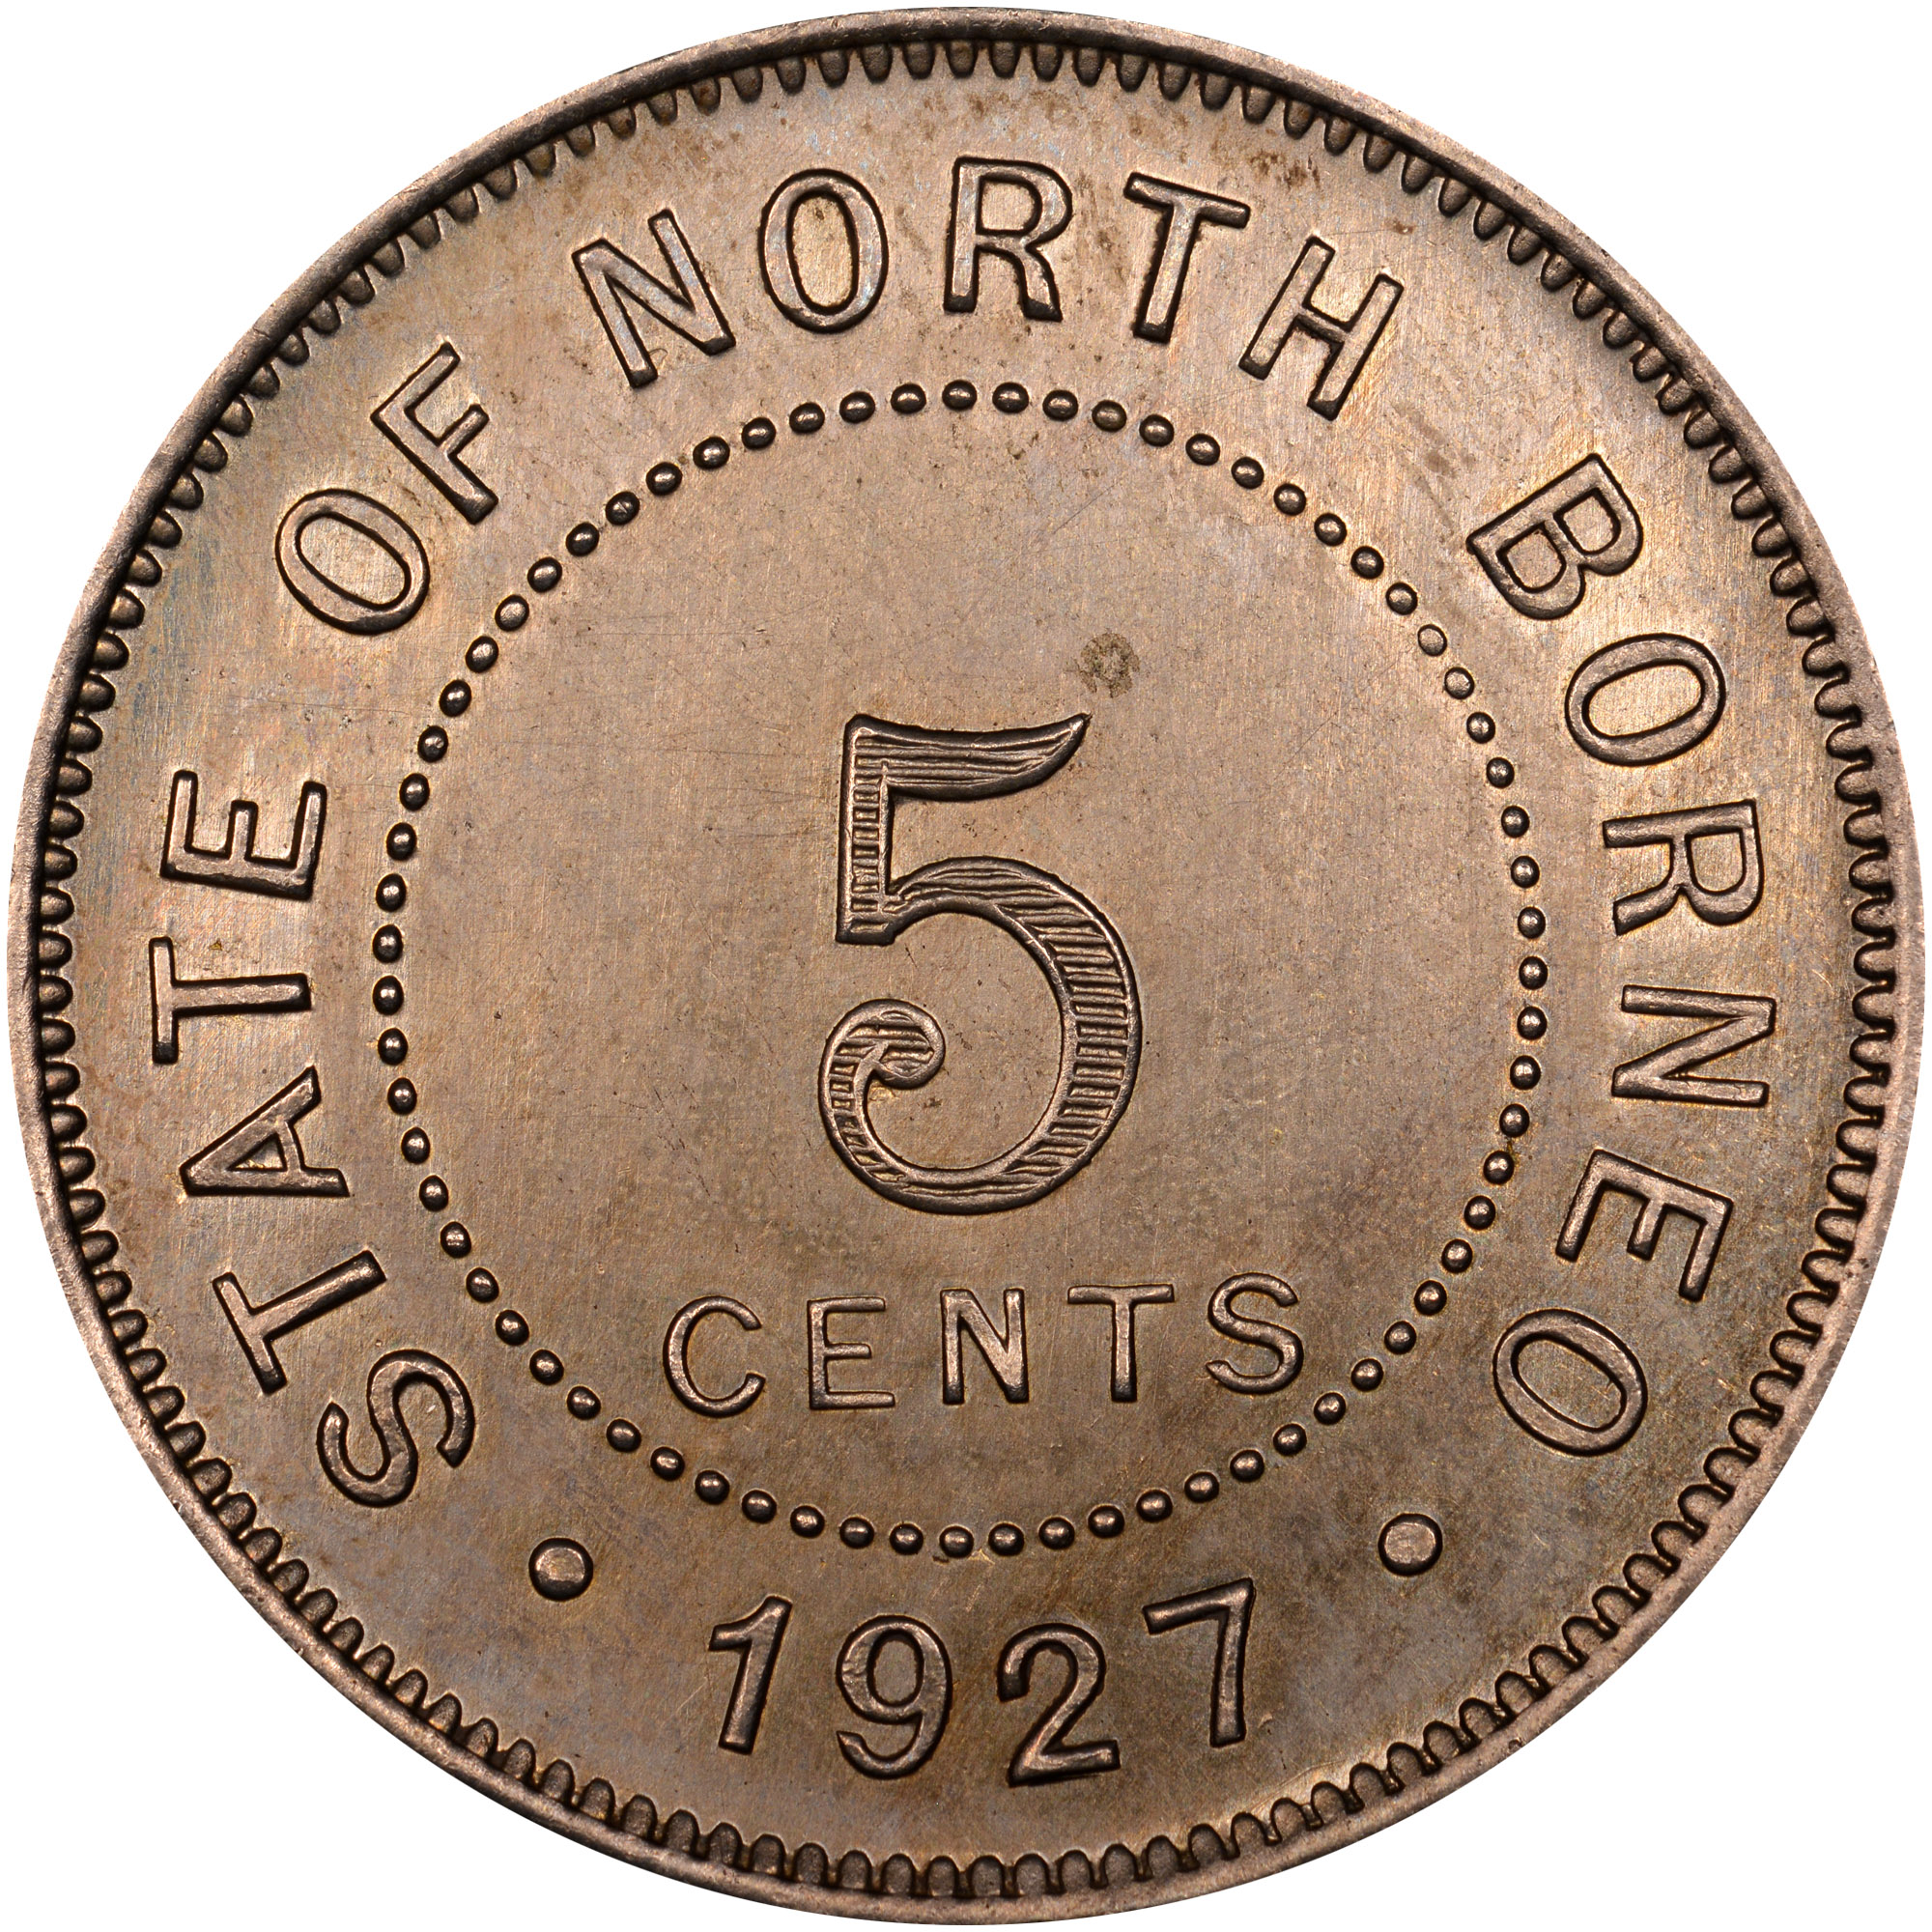 1903-1941 British North Borneo 5 Cents obverse